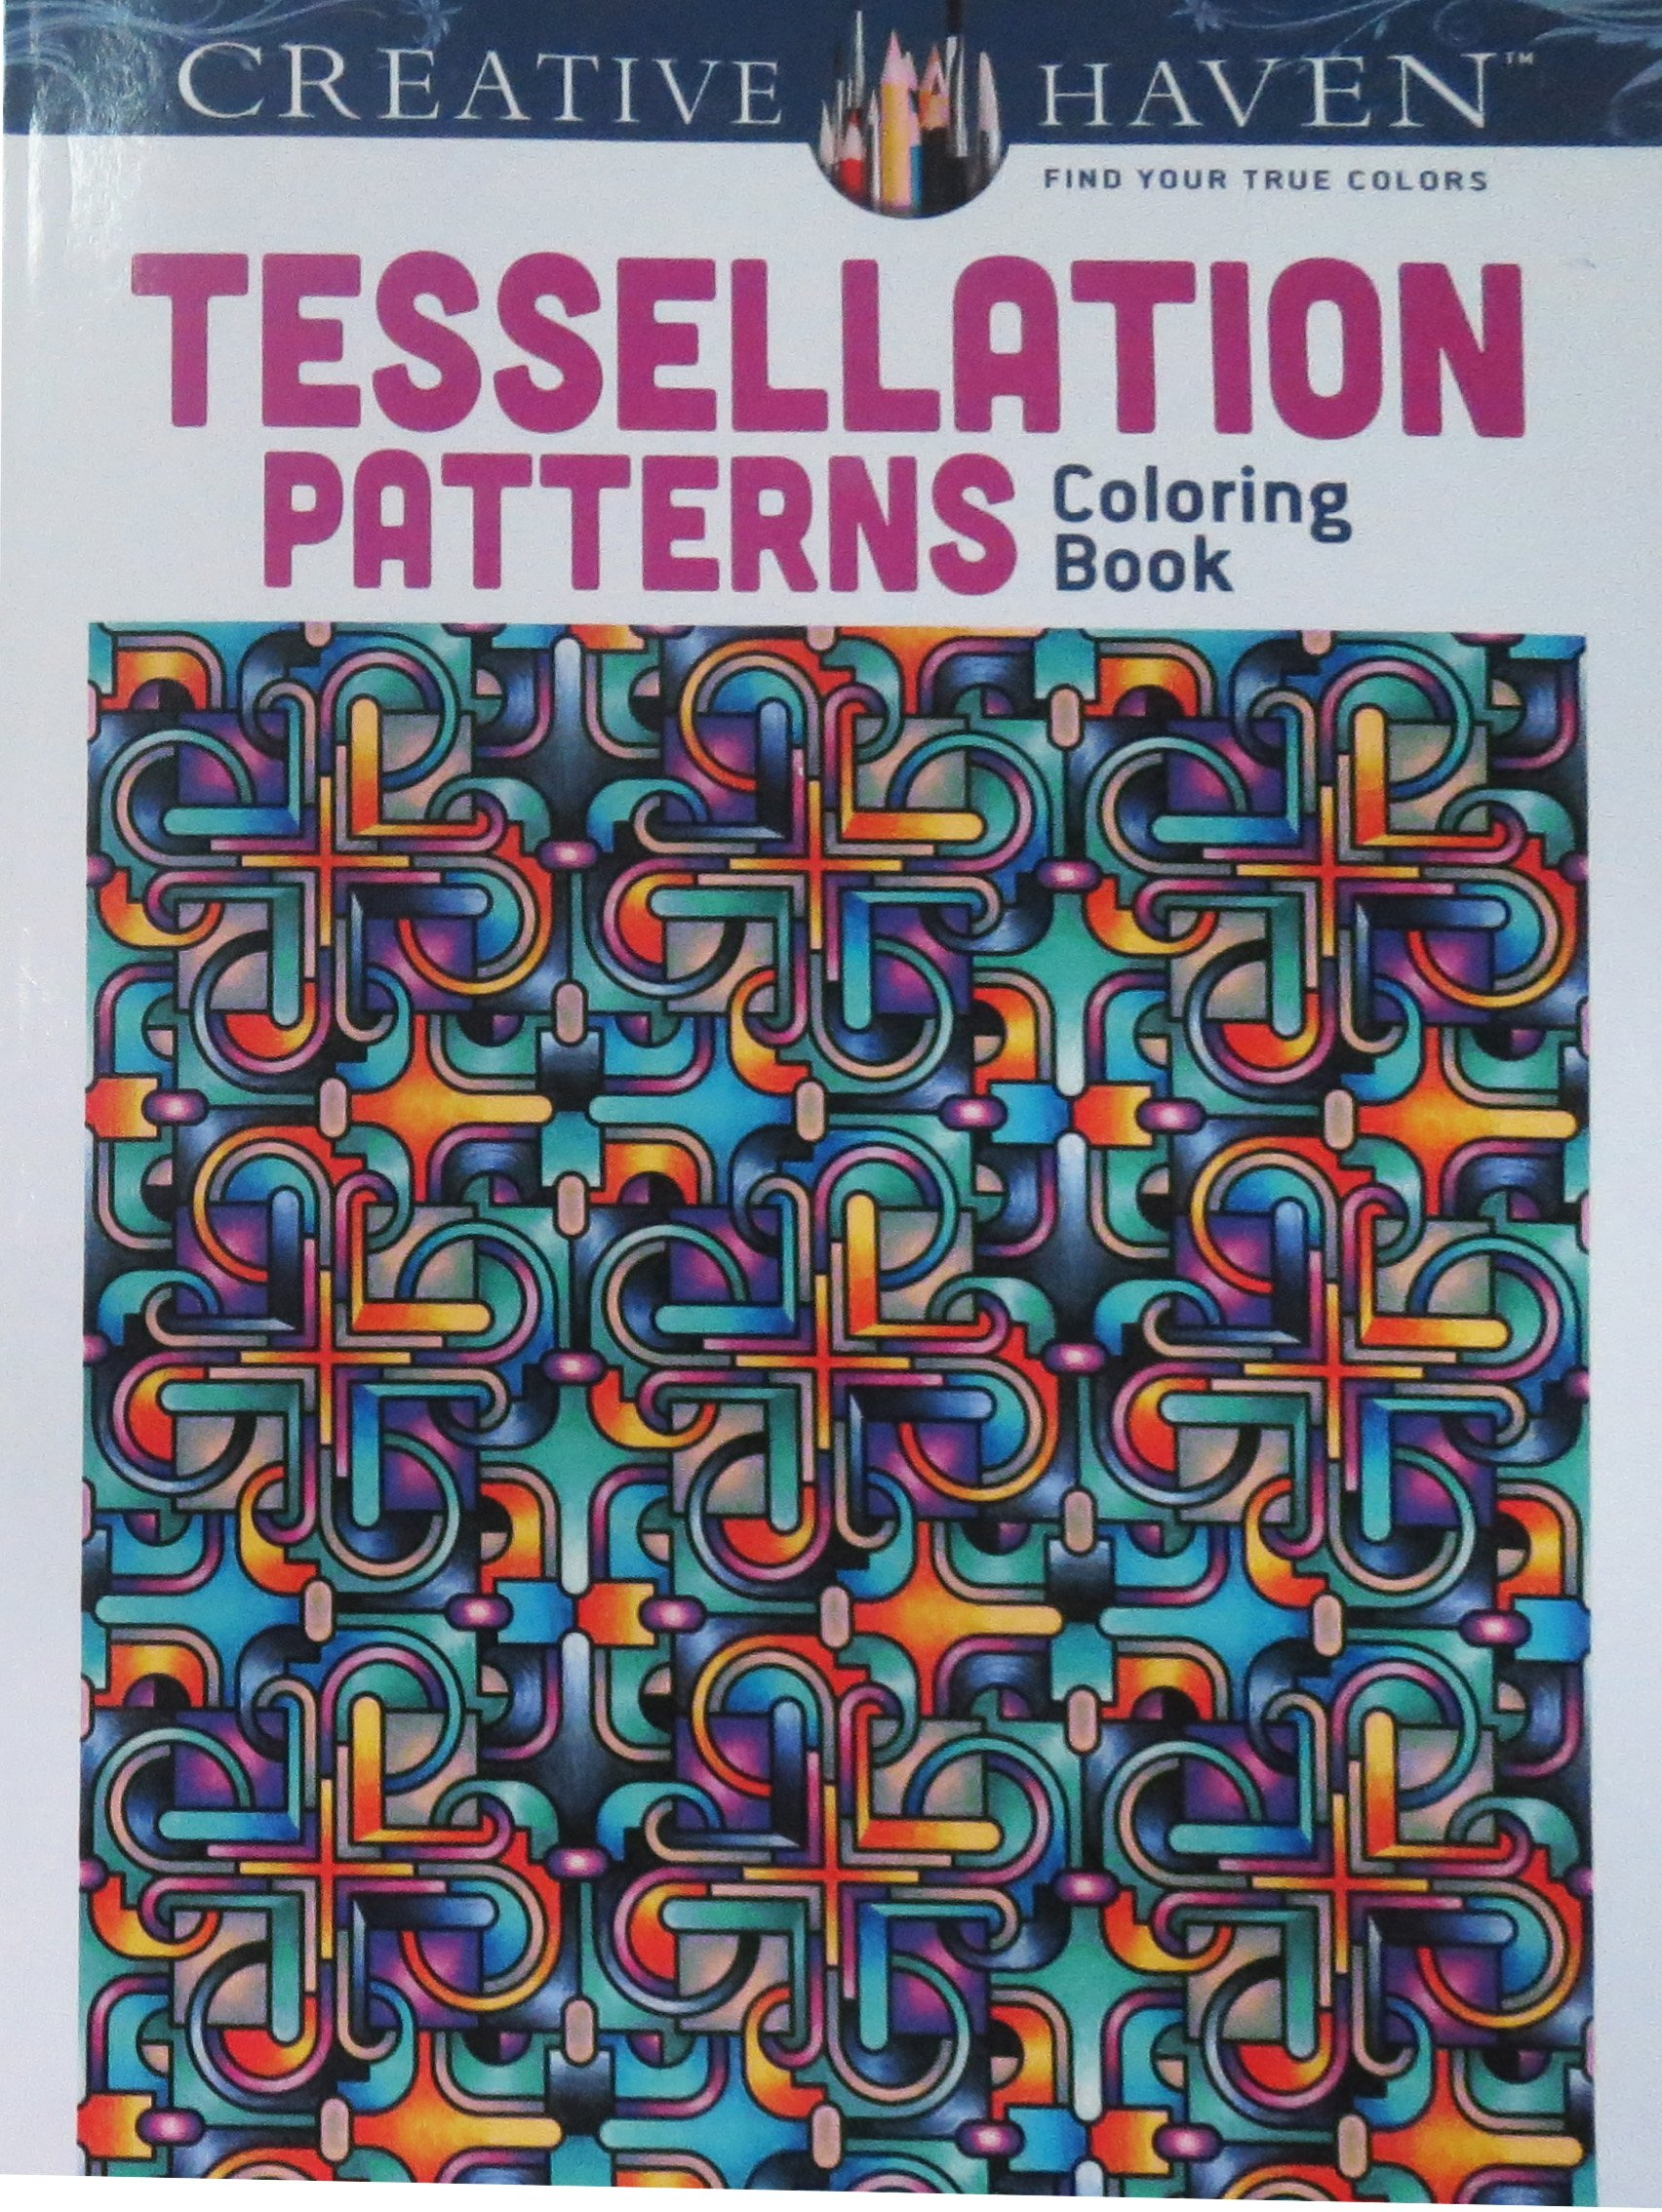 amazon com dover creative haven tessellation patterns coloring